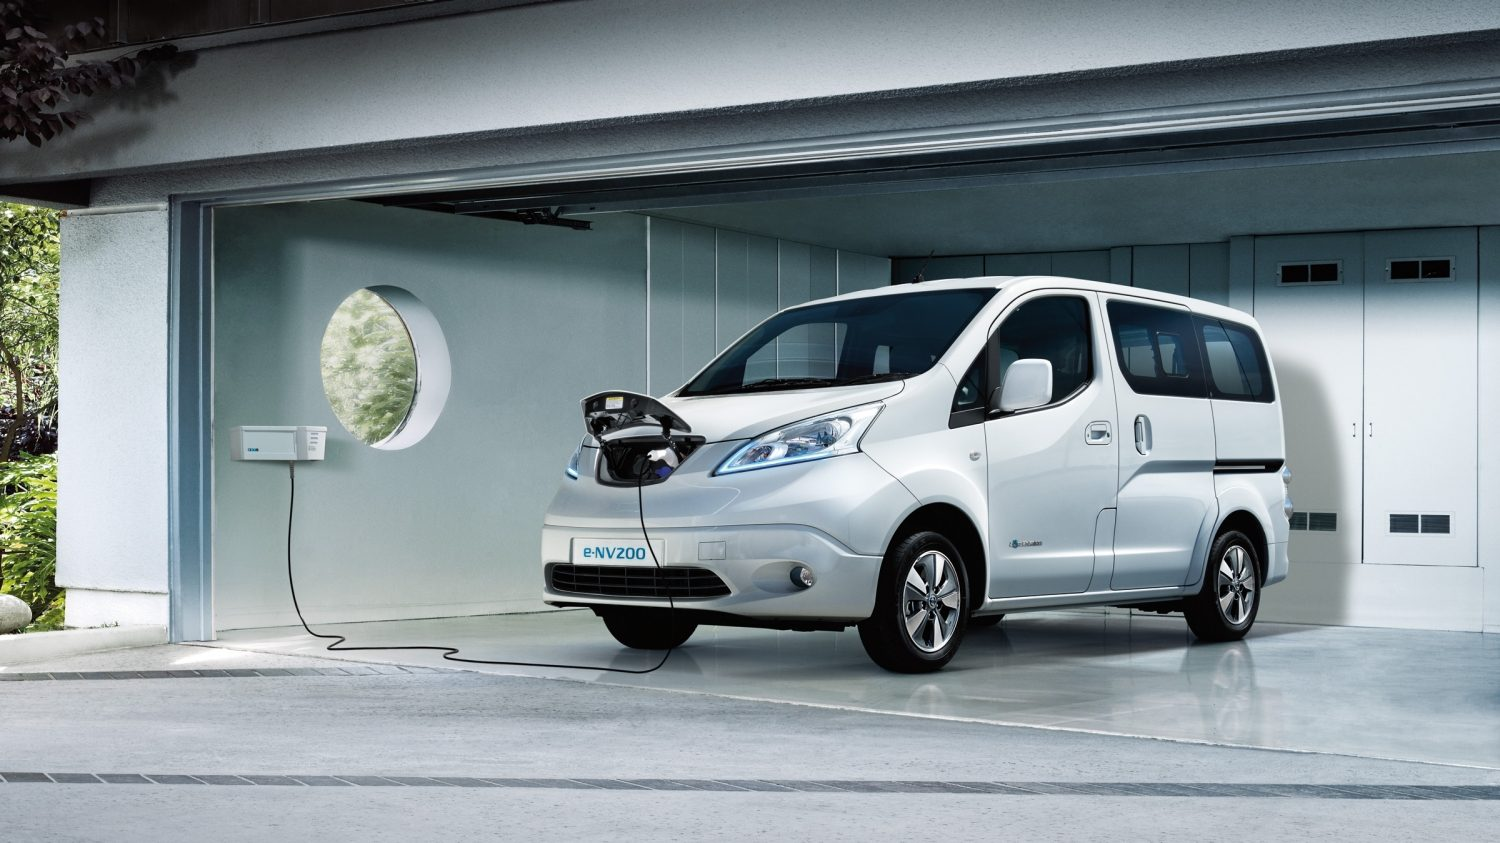 Nissan e-NV200 EVALIA - In carica in garage